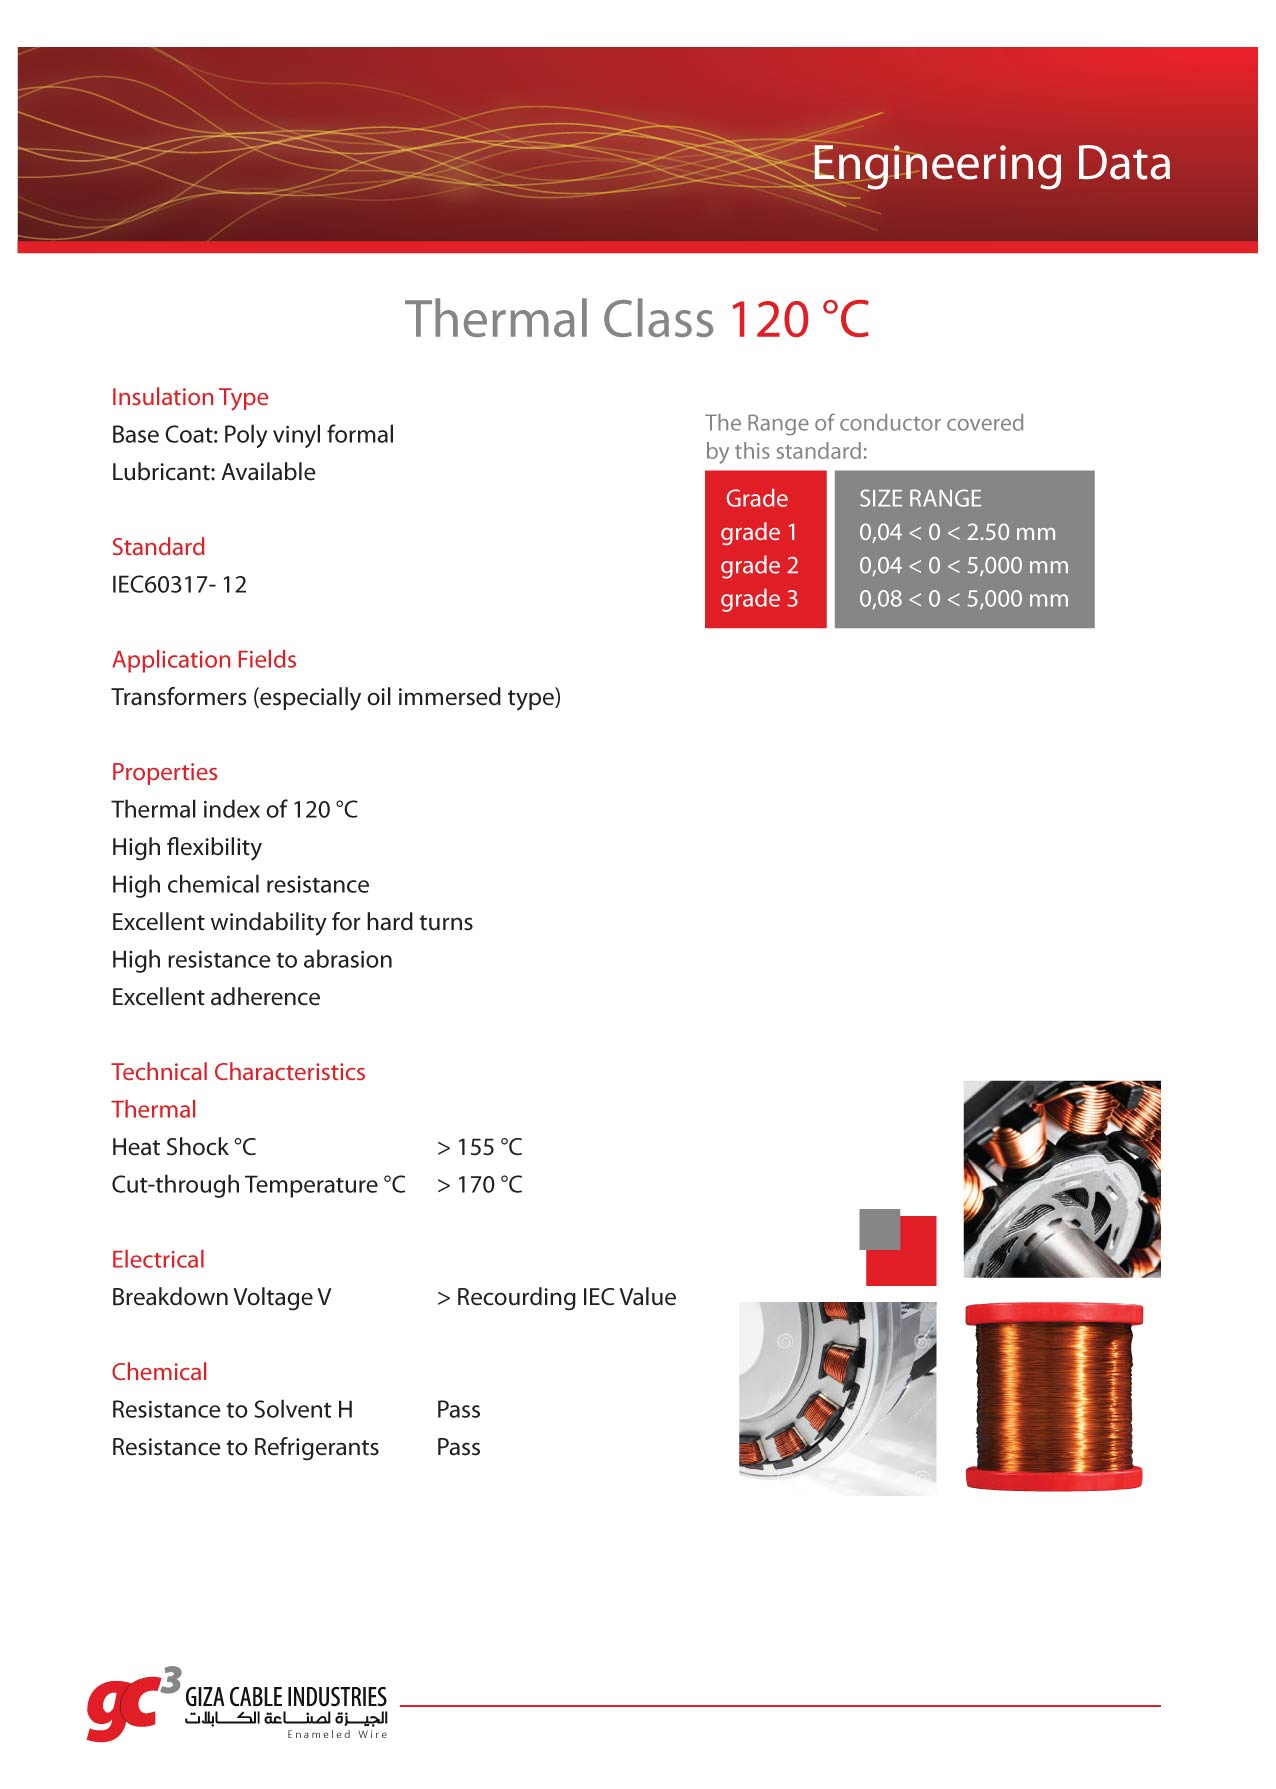 Thermal Class 120 °C